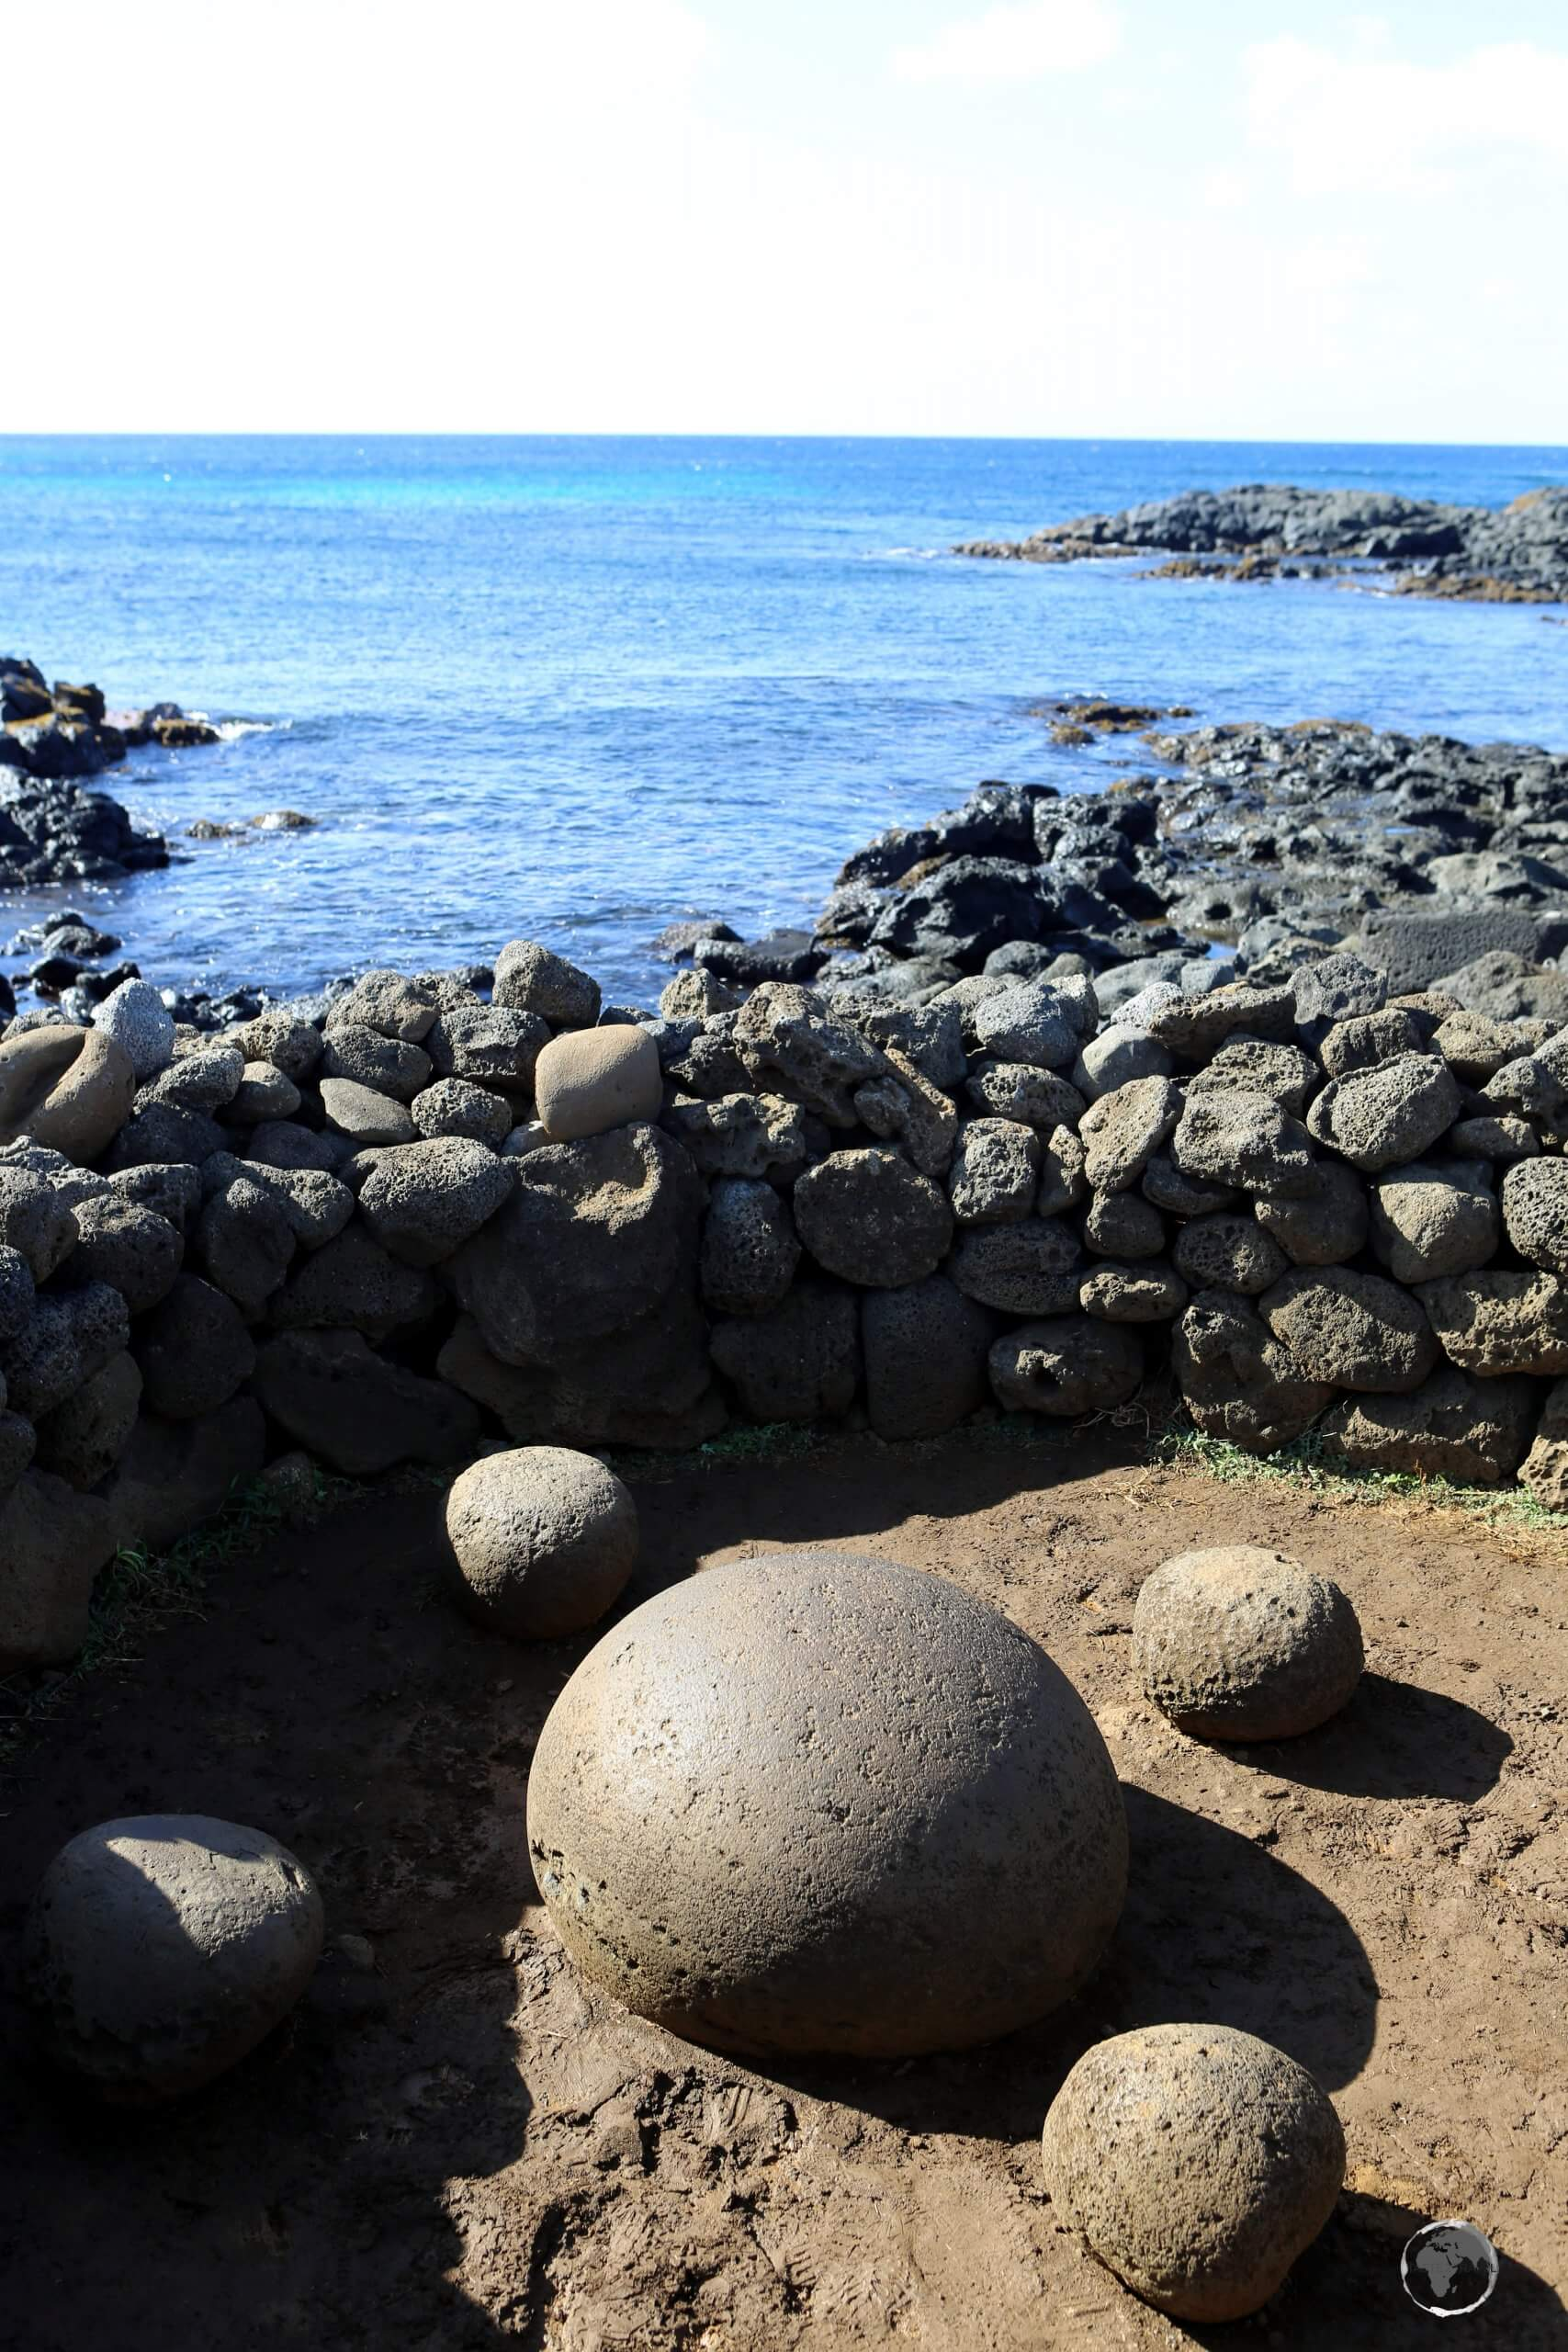 The magnetic stone of Te Pito Kura was supposedly bought to the island by the founding king of the Rapa Nui people. It is said that this rock, almost spherical and smooth, concentrates a magnetic and supernatural energy called 'mana'.